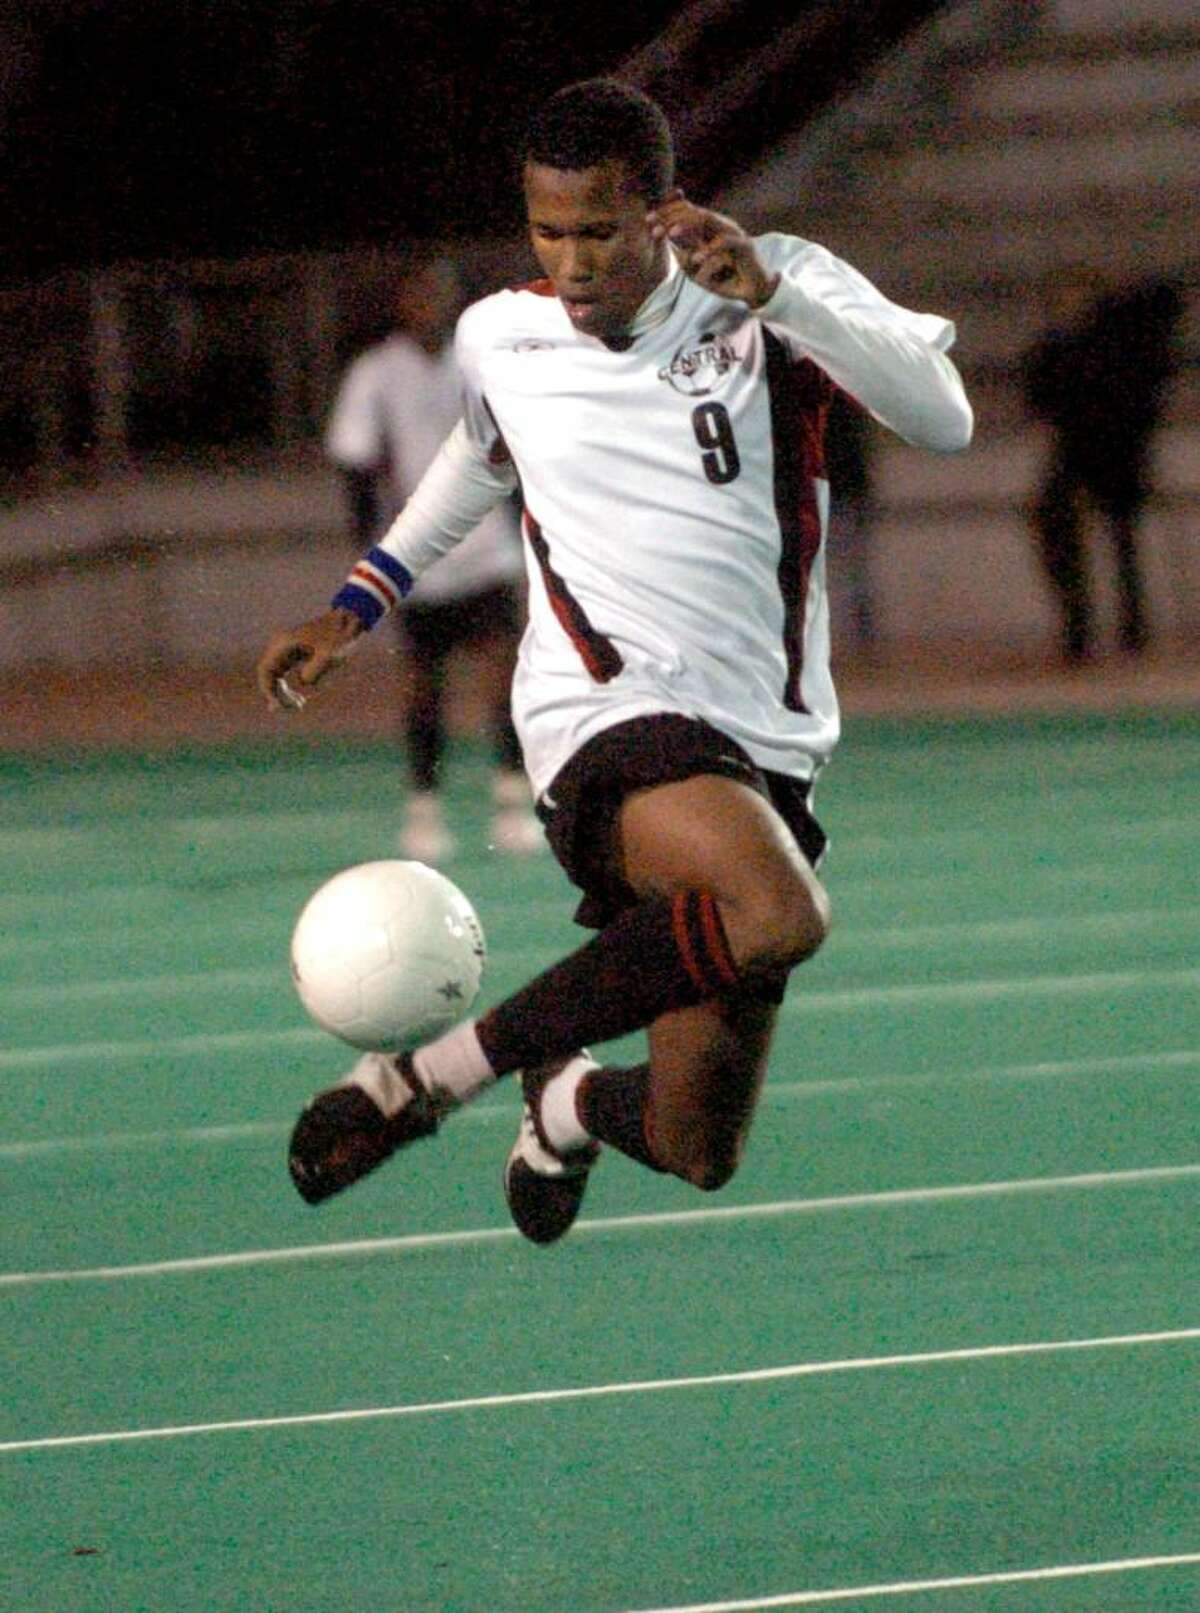 Central's # Mickelvin Lopes uses some fancy footwork to guide the ball, during FCIAC soccer action against Staples in Bridgeport, Conn. on Wednesday Oct. 28, 2009. McLauren scored both of the teams goals. Central beat Staples 2-0.